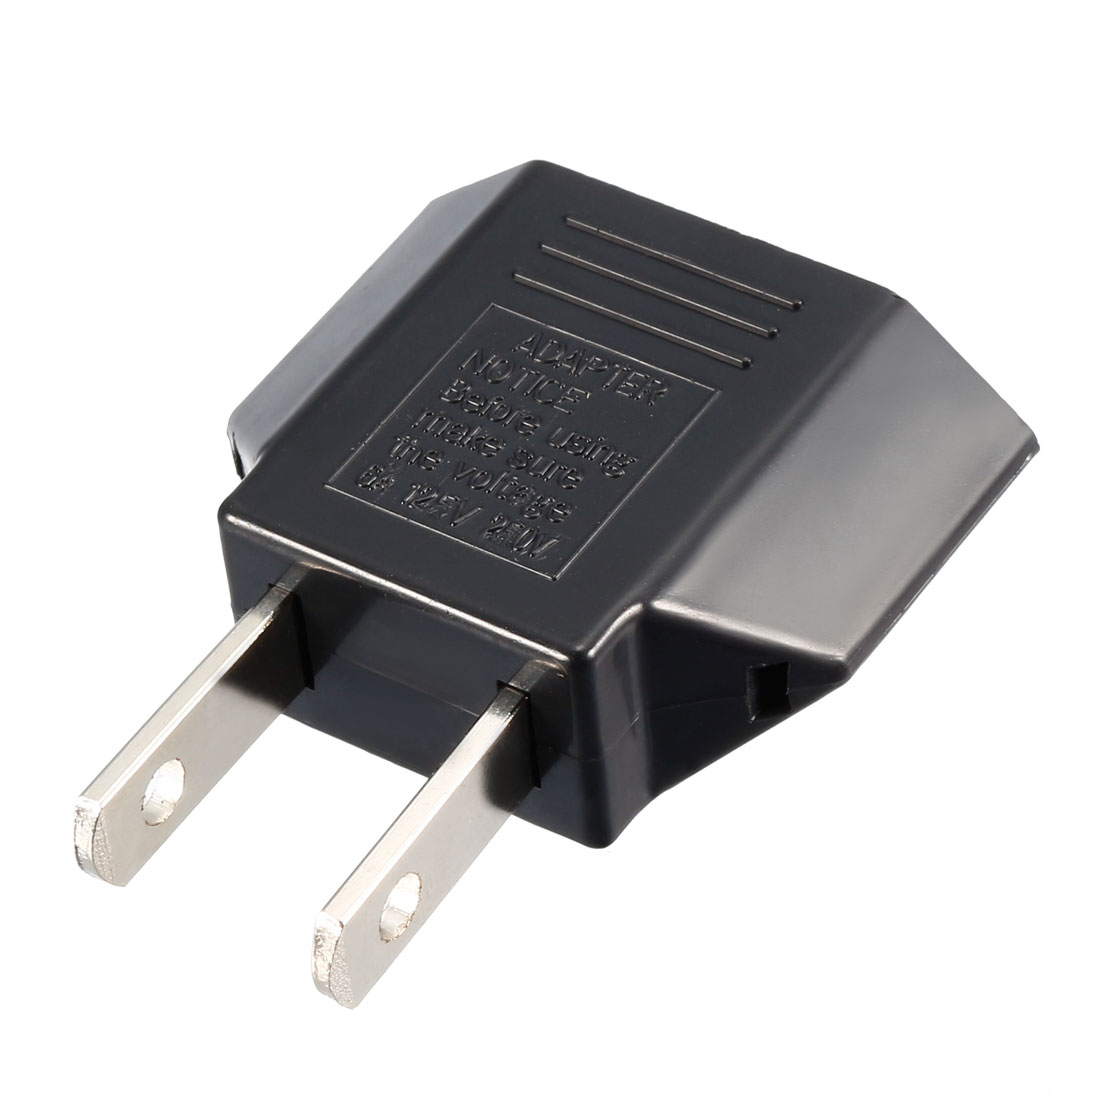 Euro EU to US USA Travel Power Plug Outlet Adapter Converters